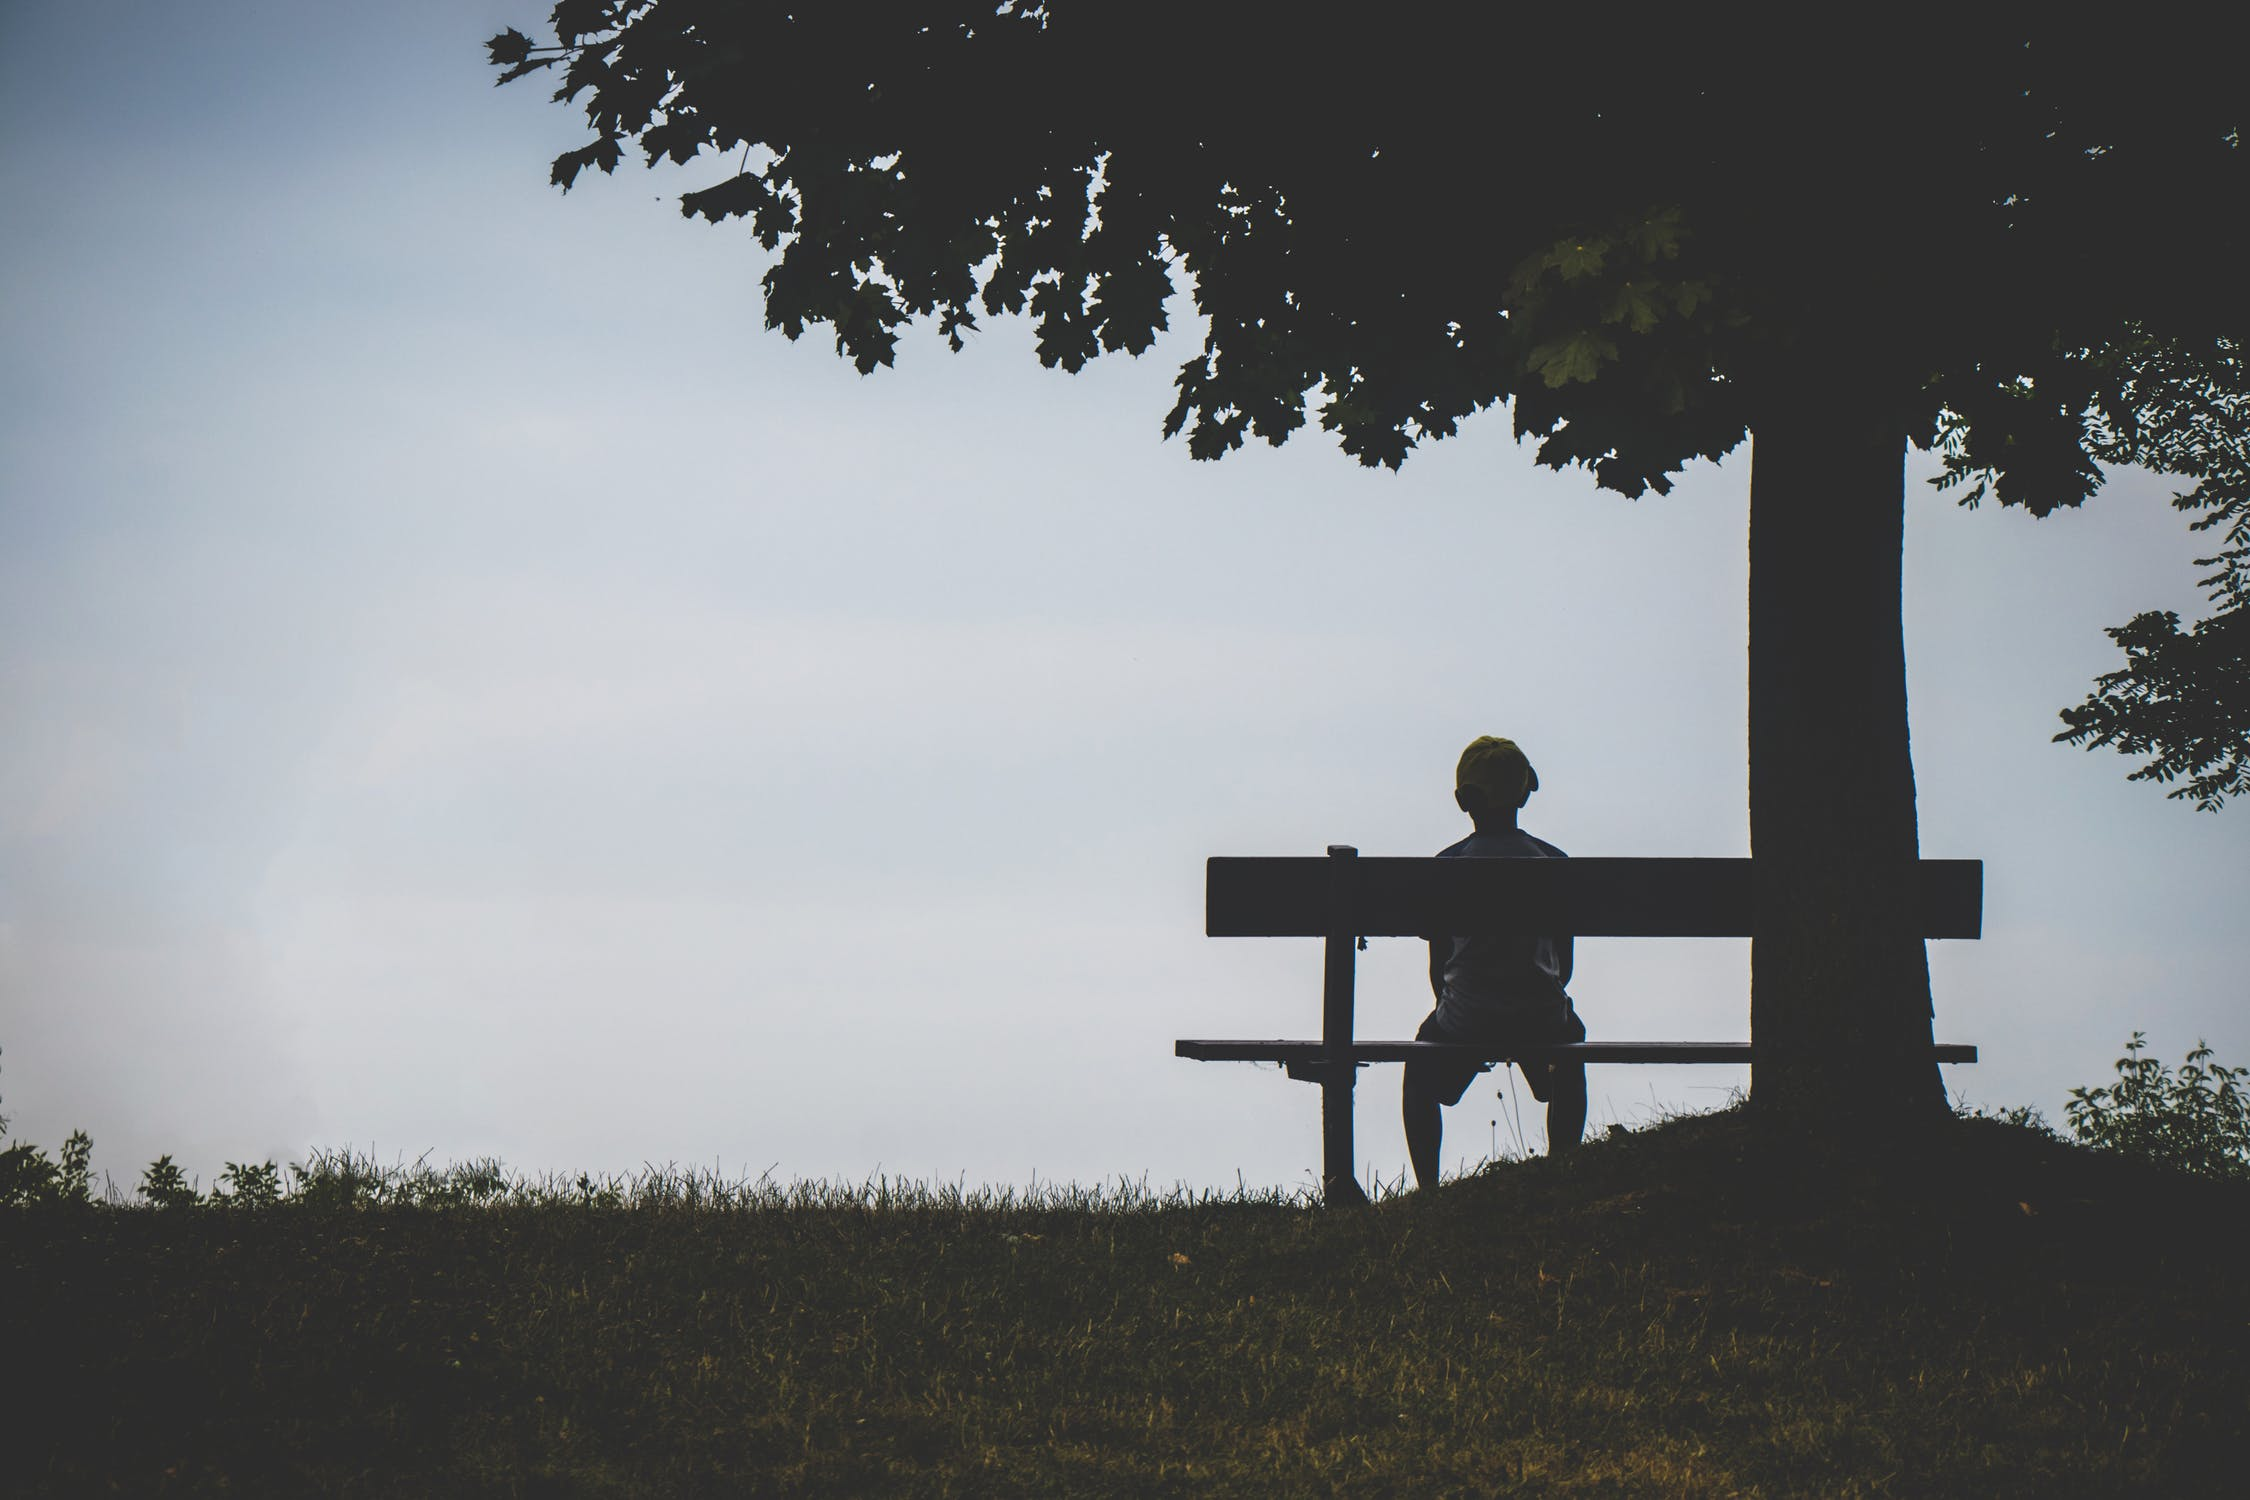 The silhouette of a person sitting on a park bench alone